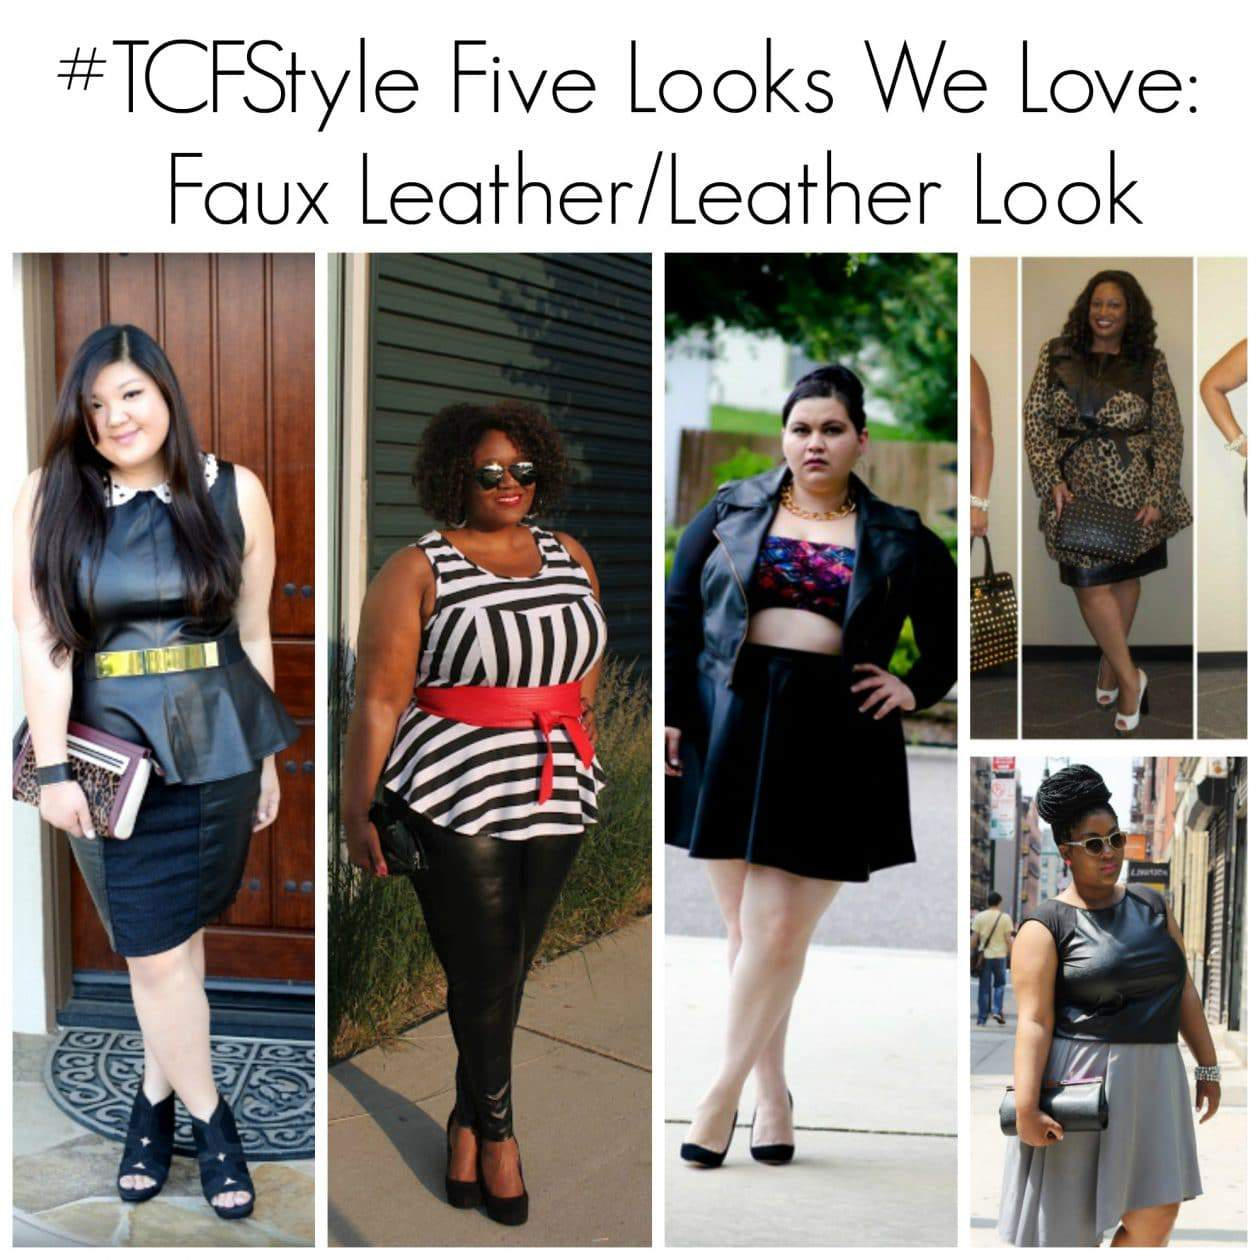 #TCFStyle: Five Looks We Love – Leather Looks/Faux Leather